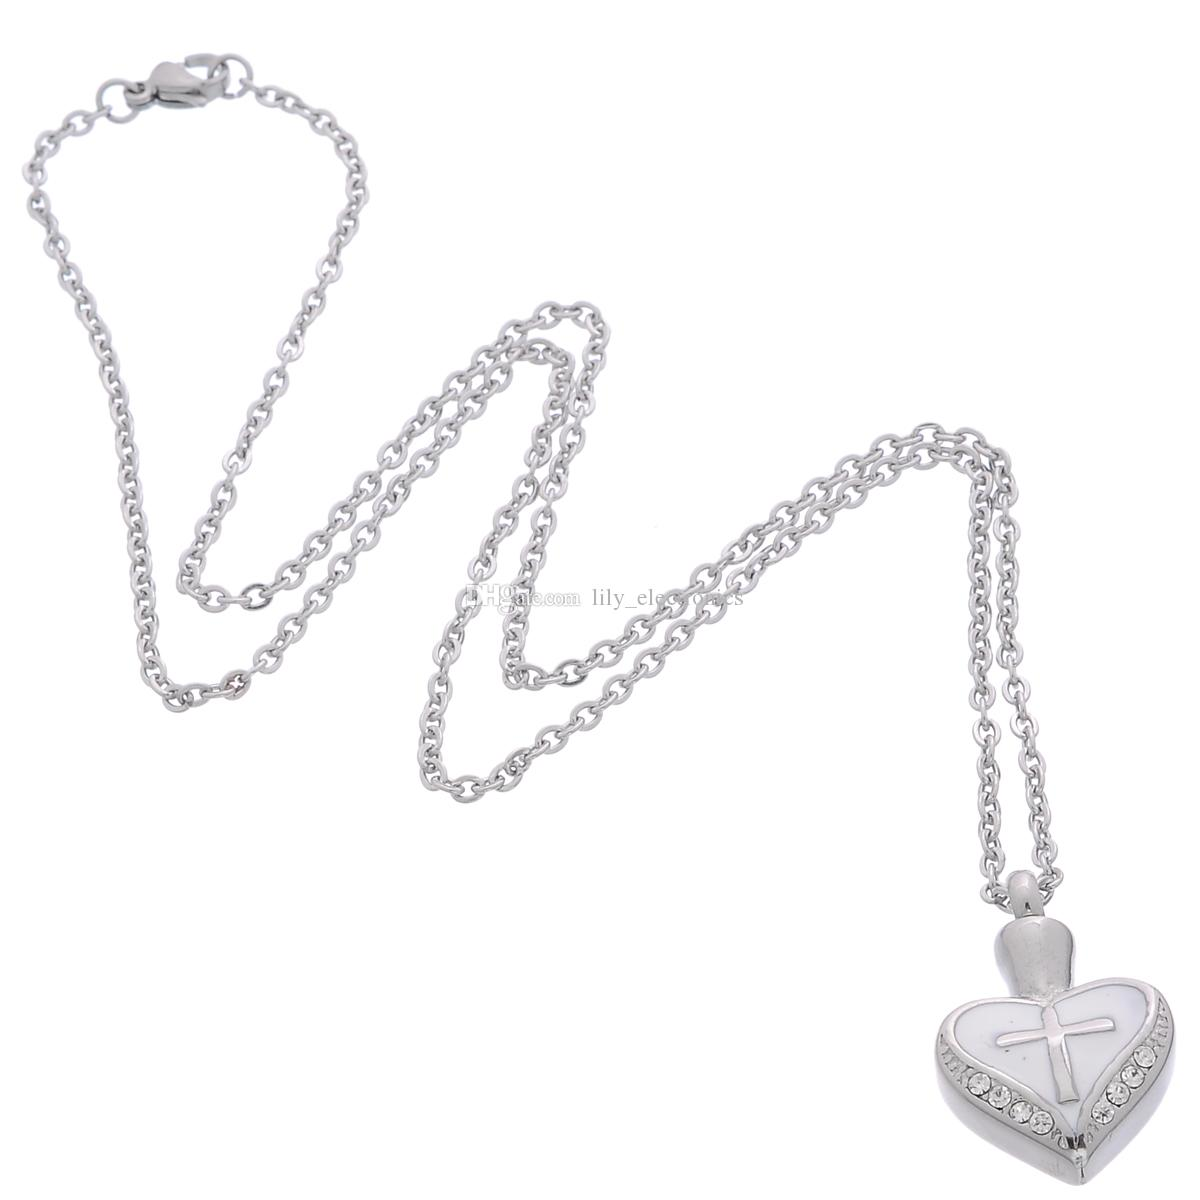 Lily Cremation Jewelry Stainless Steel Waterproof Retro Cross Heart Urn Pendant Necklace Memorial Ash Keepsake with a Gift Bag